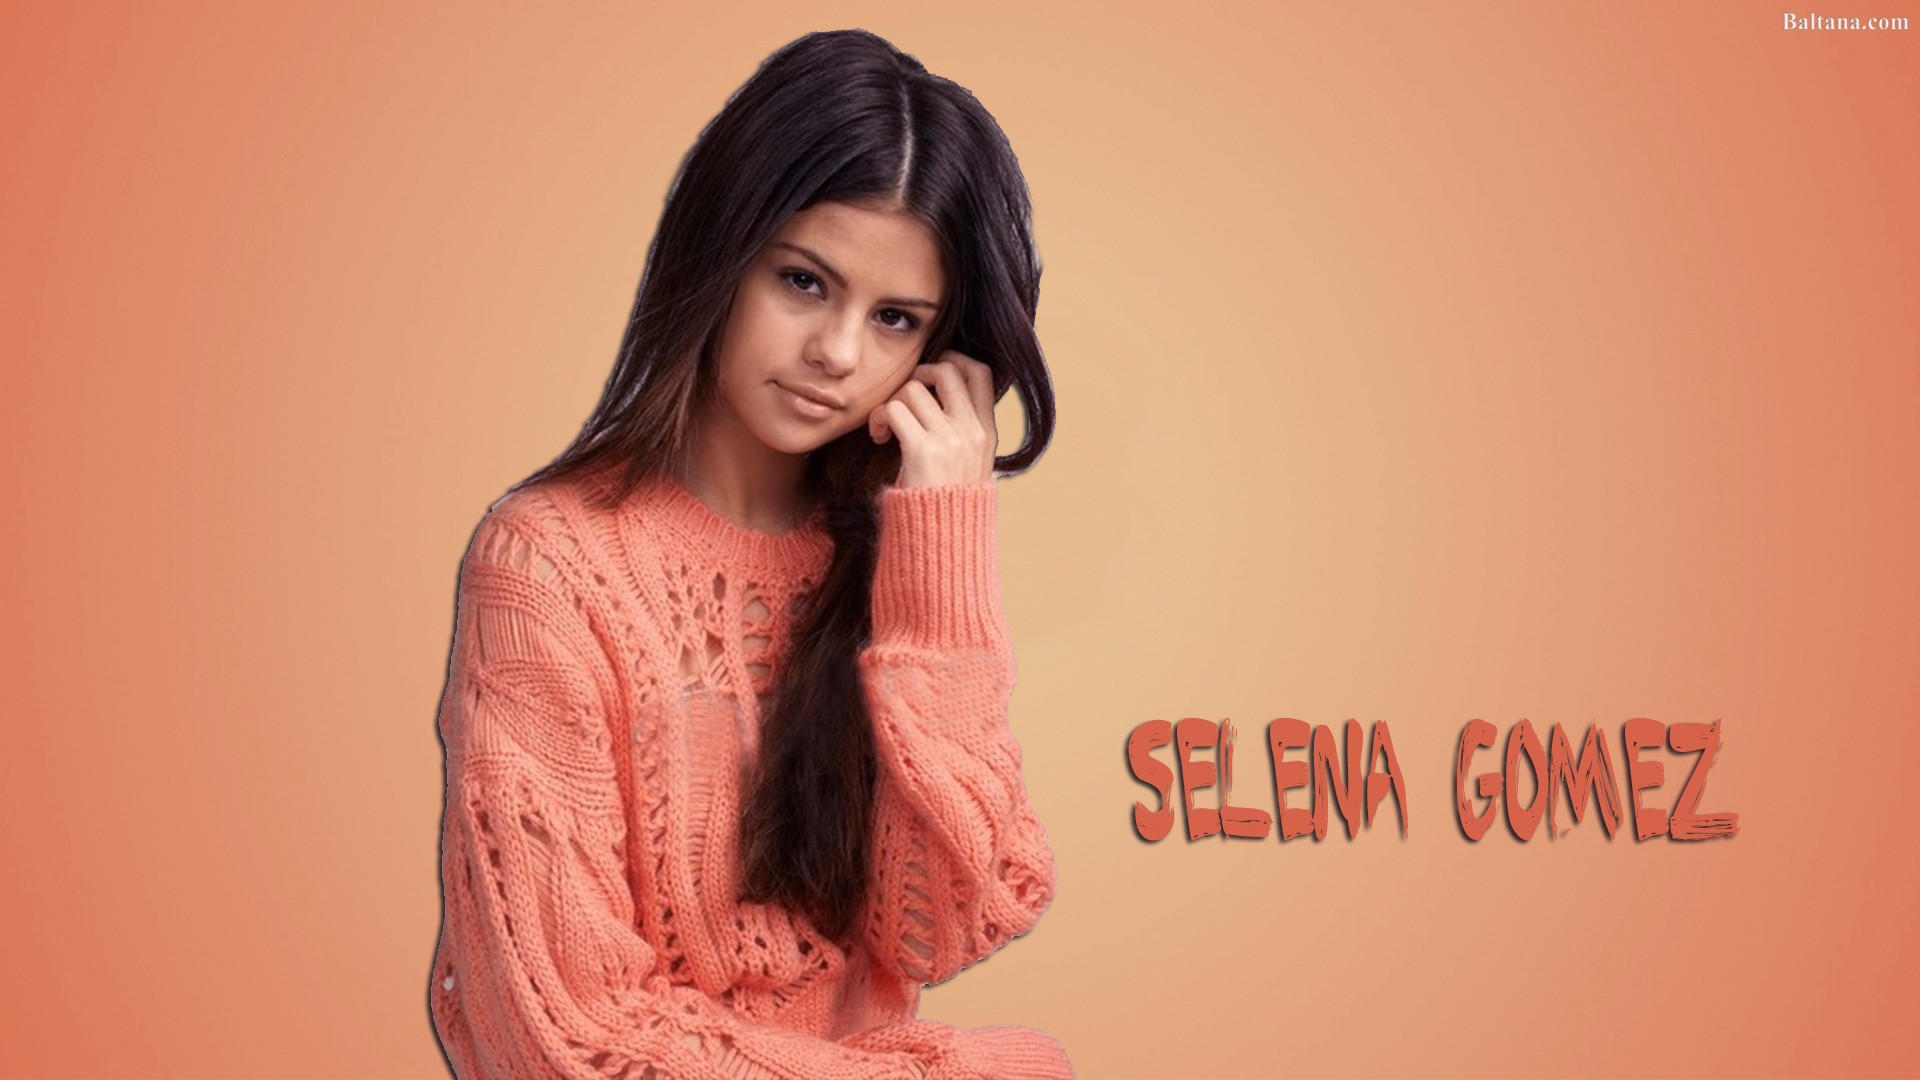 Selena Gomez Wallpapers HD Backgrounds Images Pics Photos 1920x1080